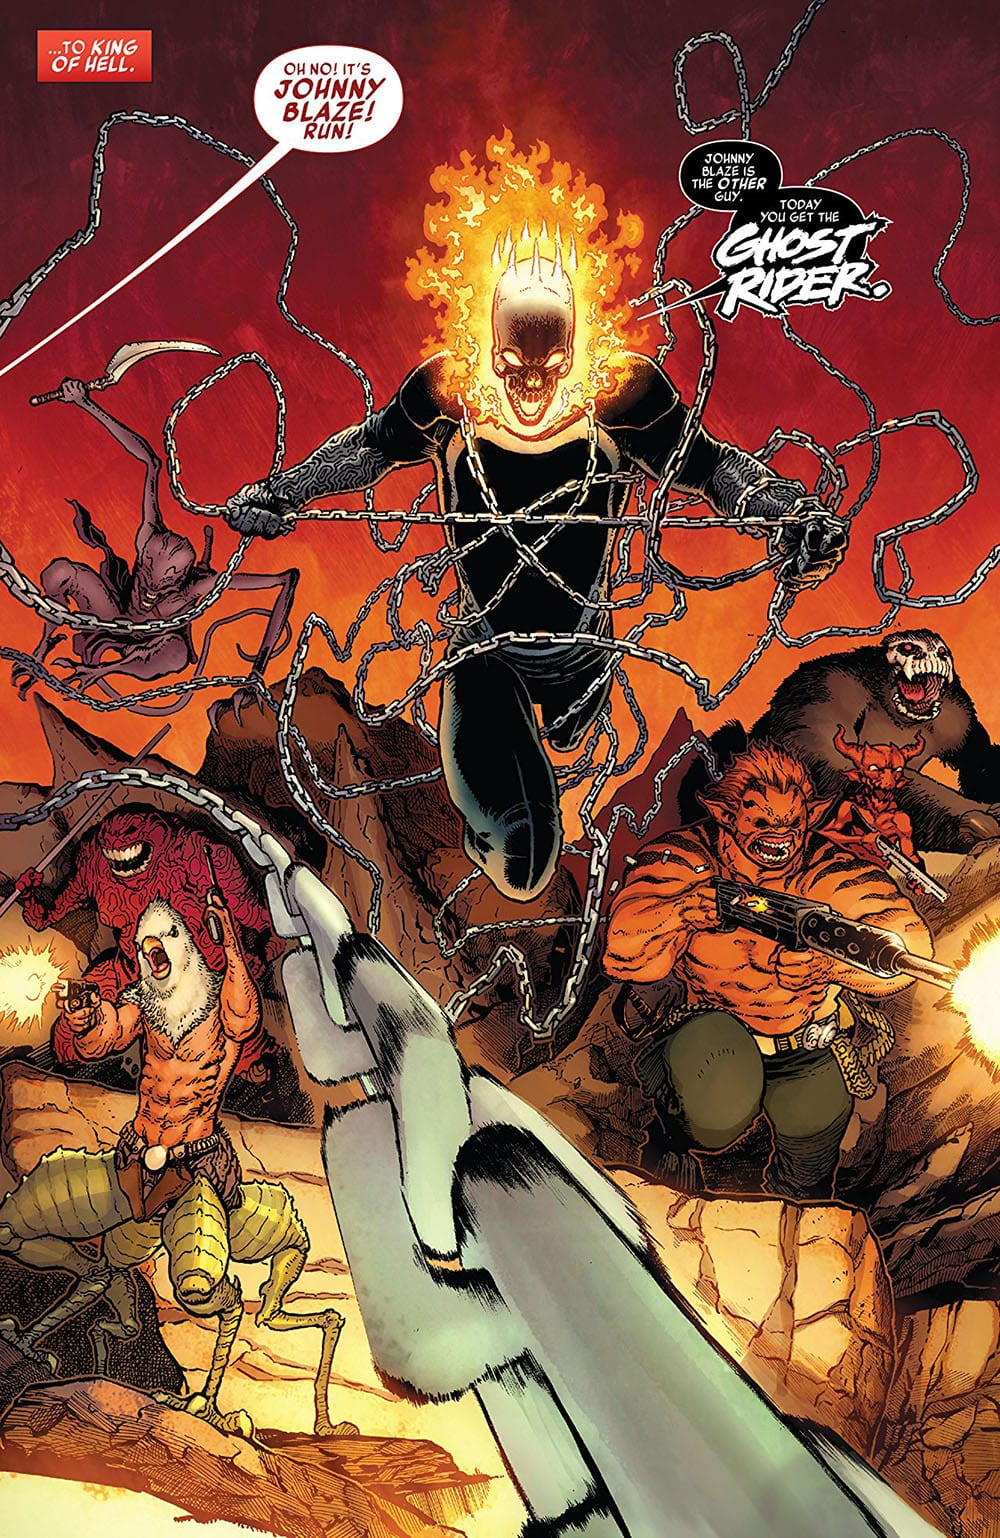 Review: Marvel's GHOST RIDER #1 Begins One Hell of a Story 4